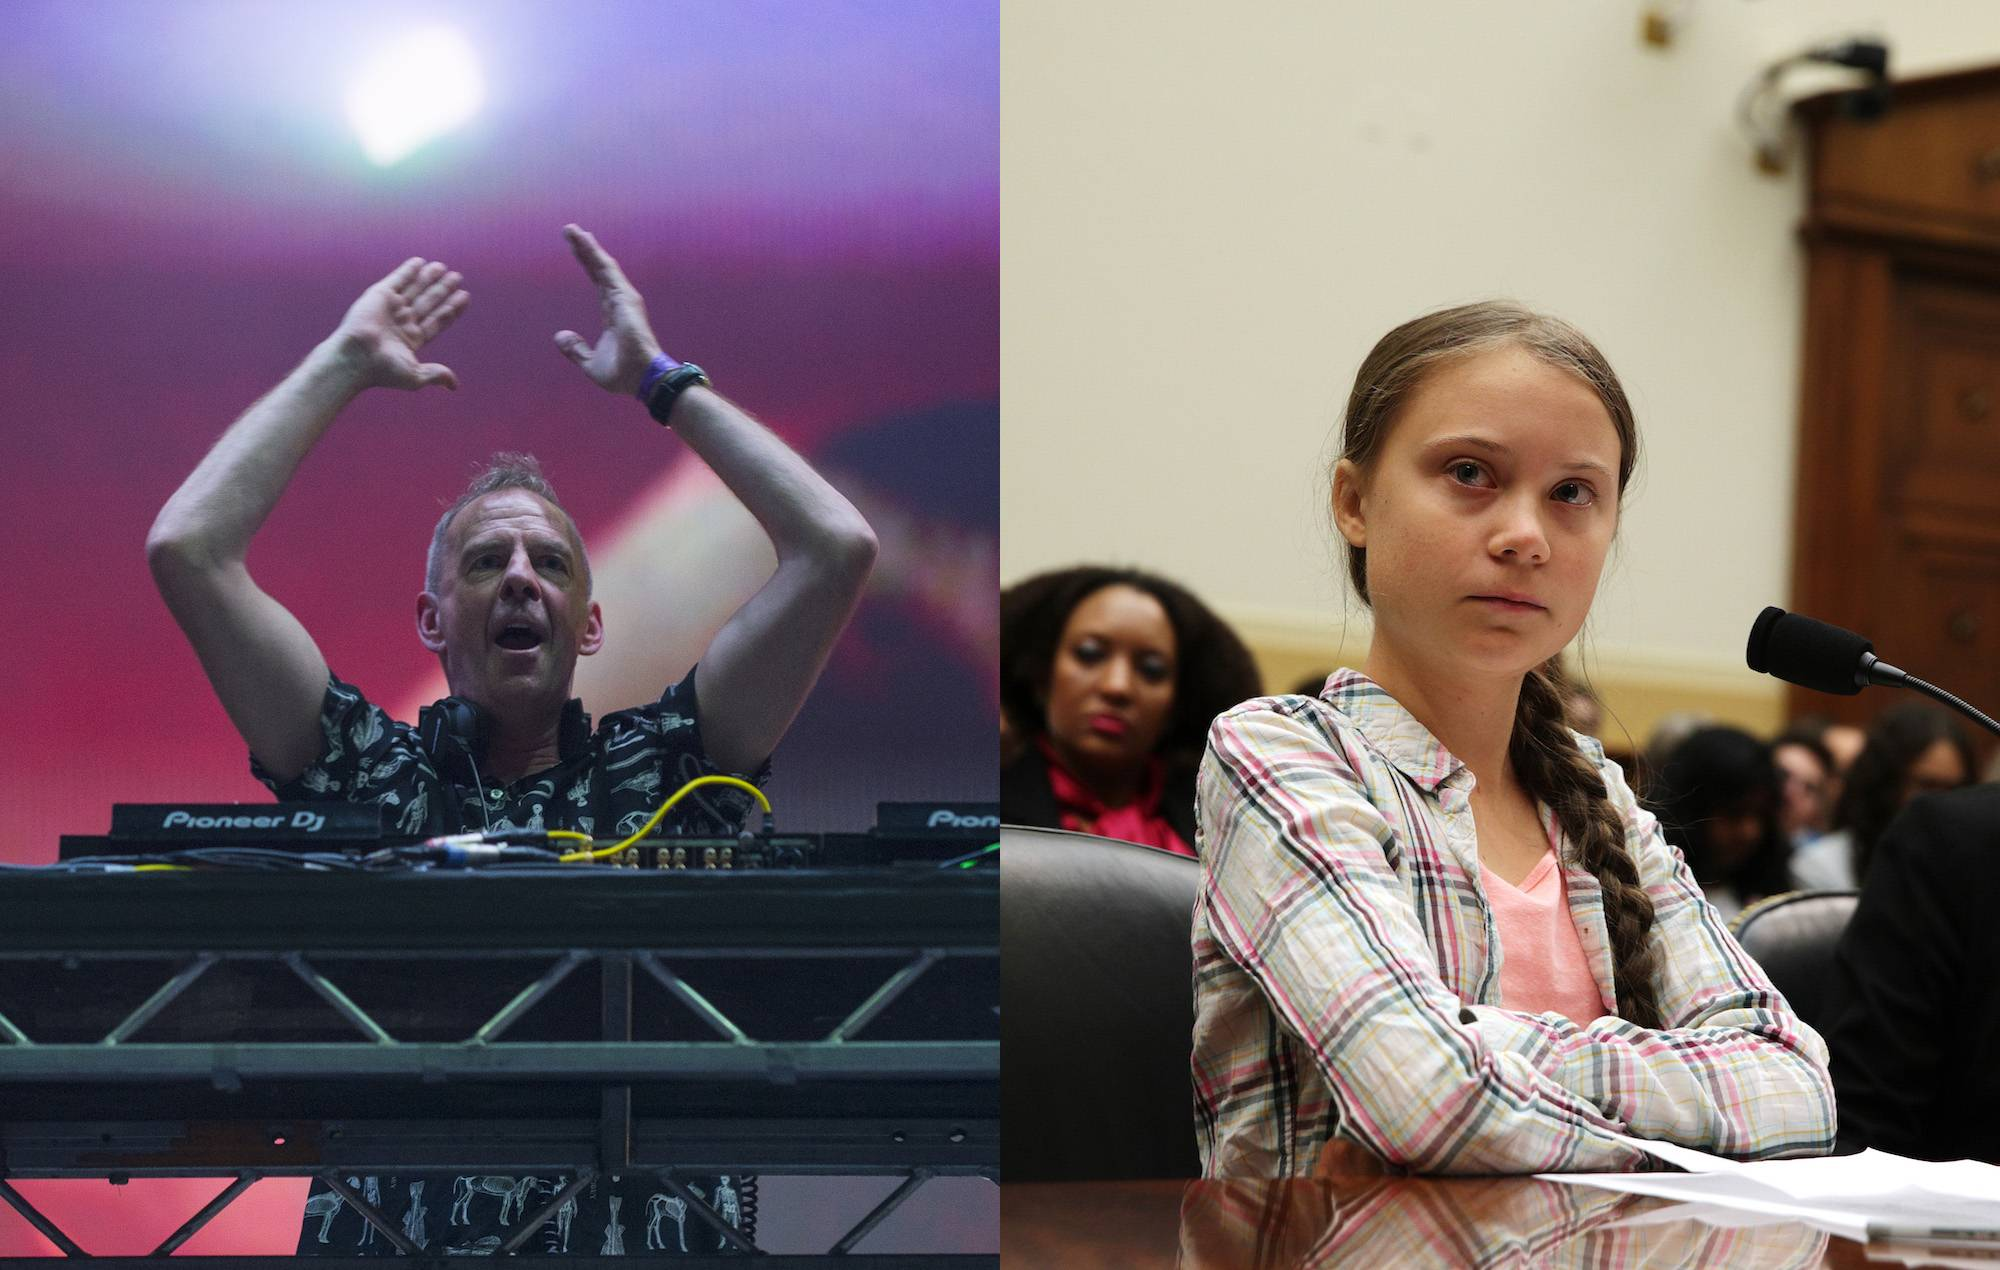 Fatboy Slim played his Greta Thunberg 'Right Here, Right Now' mashup live, and it's amazing